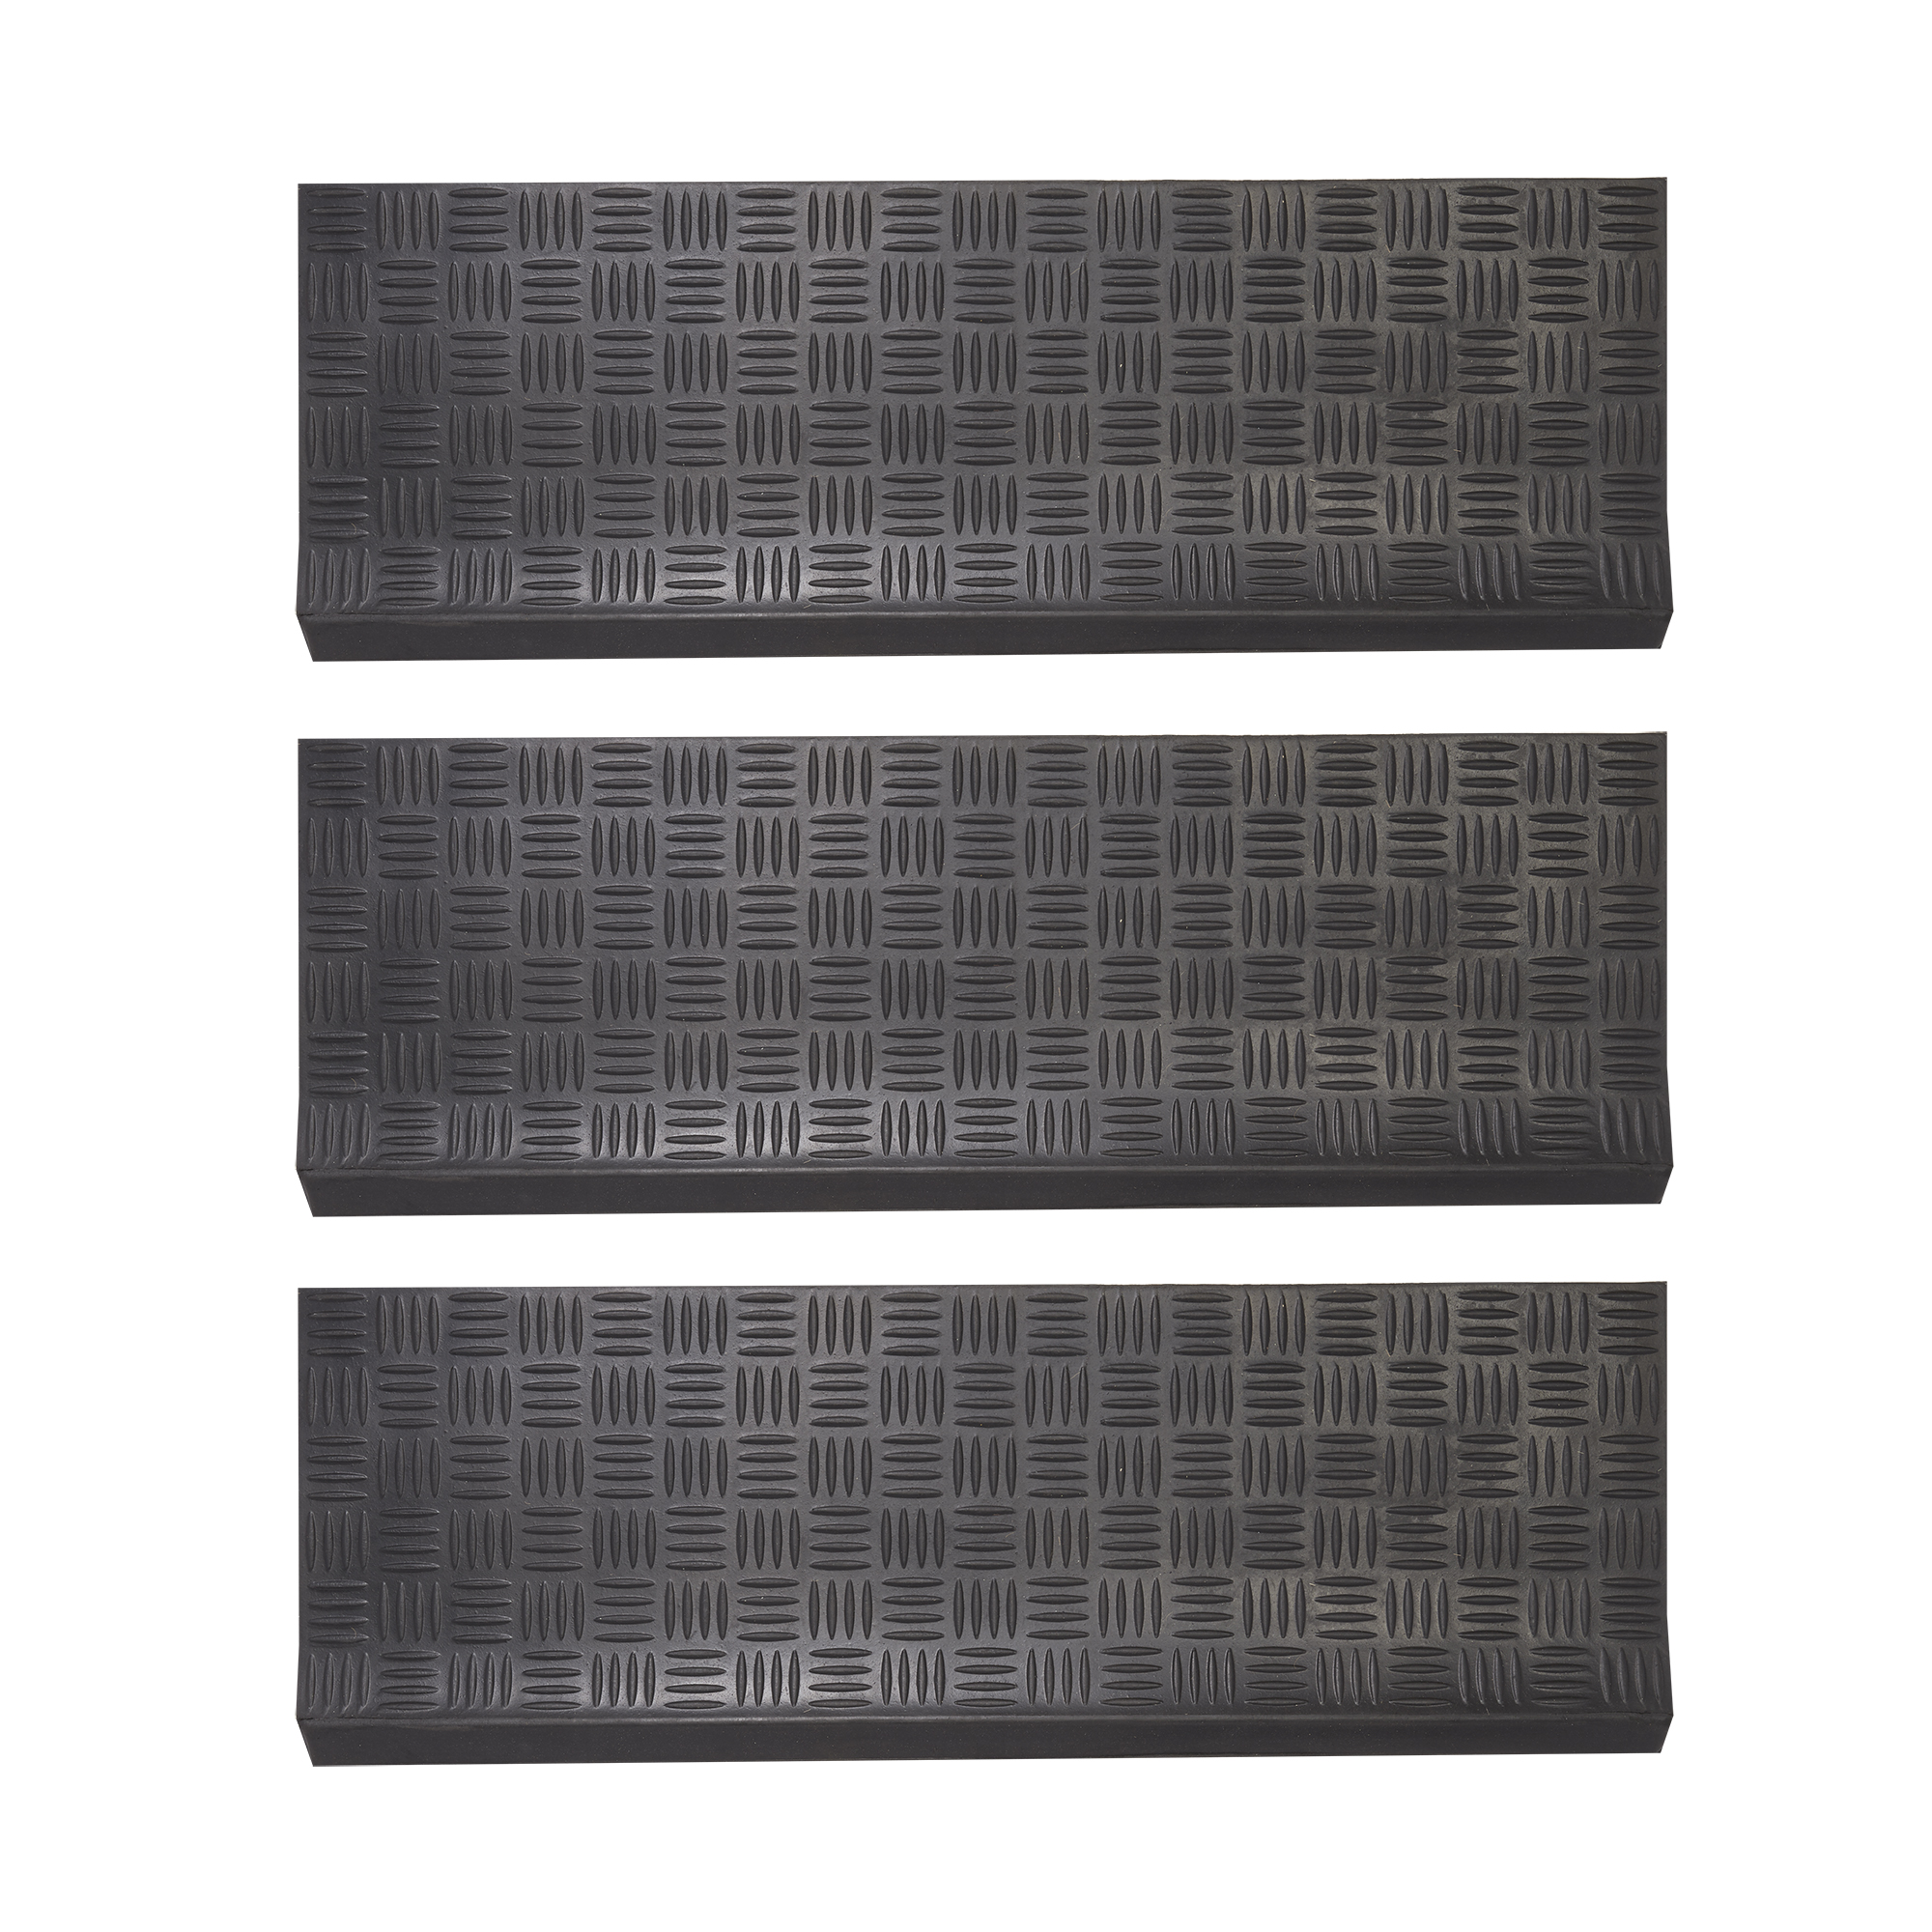 Envelor Home And Garden Indoor Outdoor Stair Treads Non Slip Rubber Stair Mats Non Slip Stair Treads Weatherproof Staircase Step Treads Skid Resistant Safety Step Mats 3 Pack Checker Pattern Walmart Com